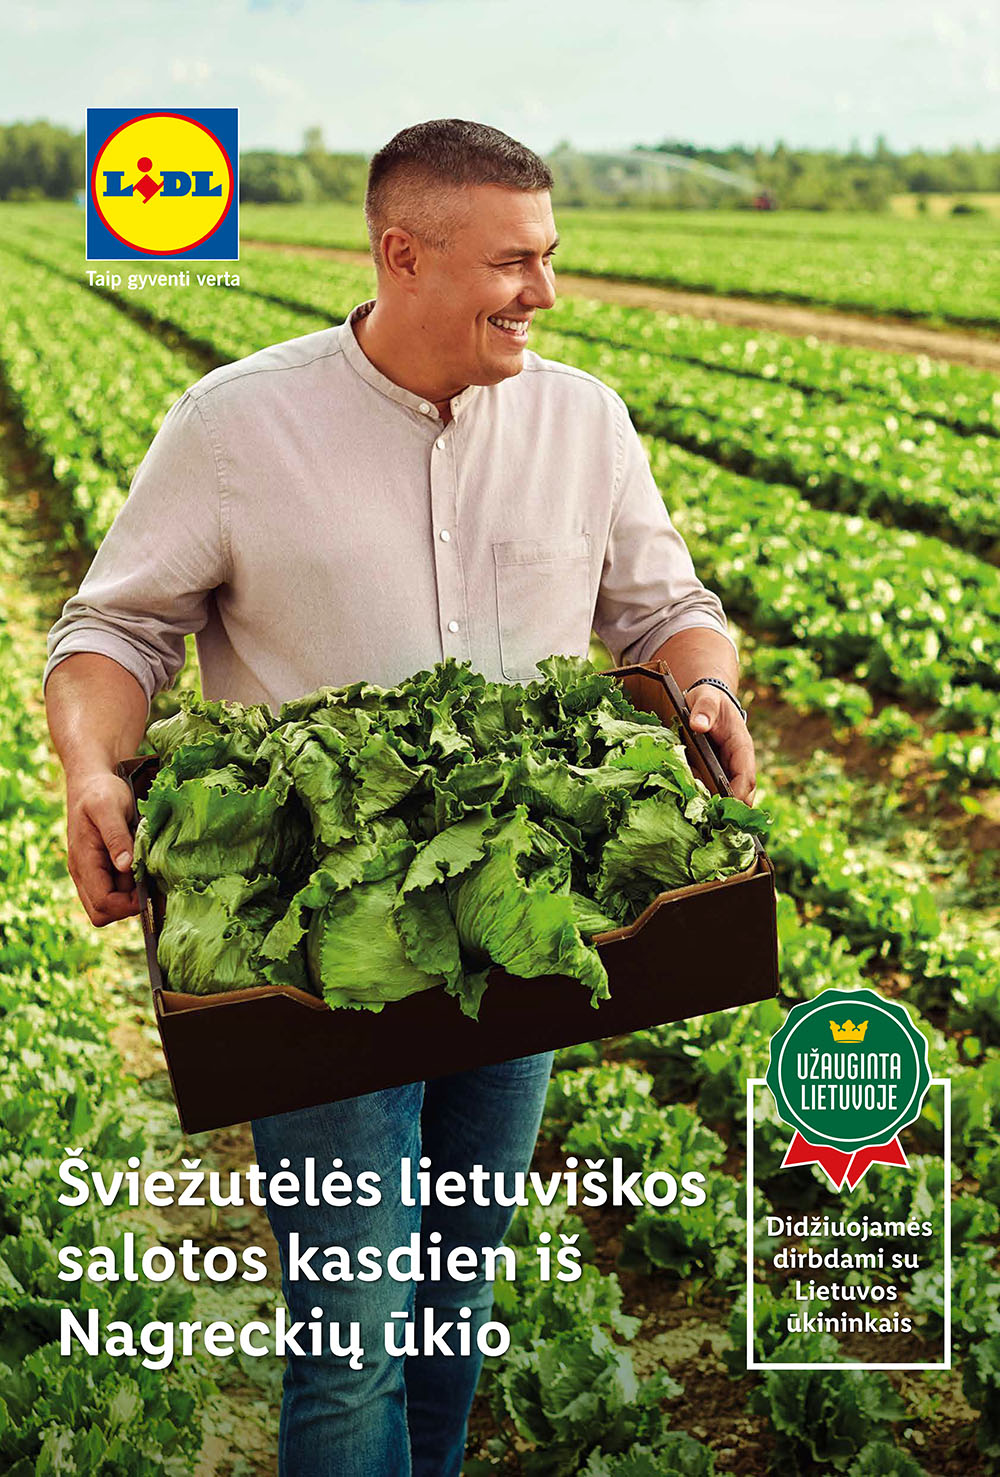 LIDL_NagreckiuSalotos_1185x1750-20190813-preview